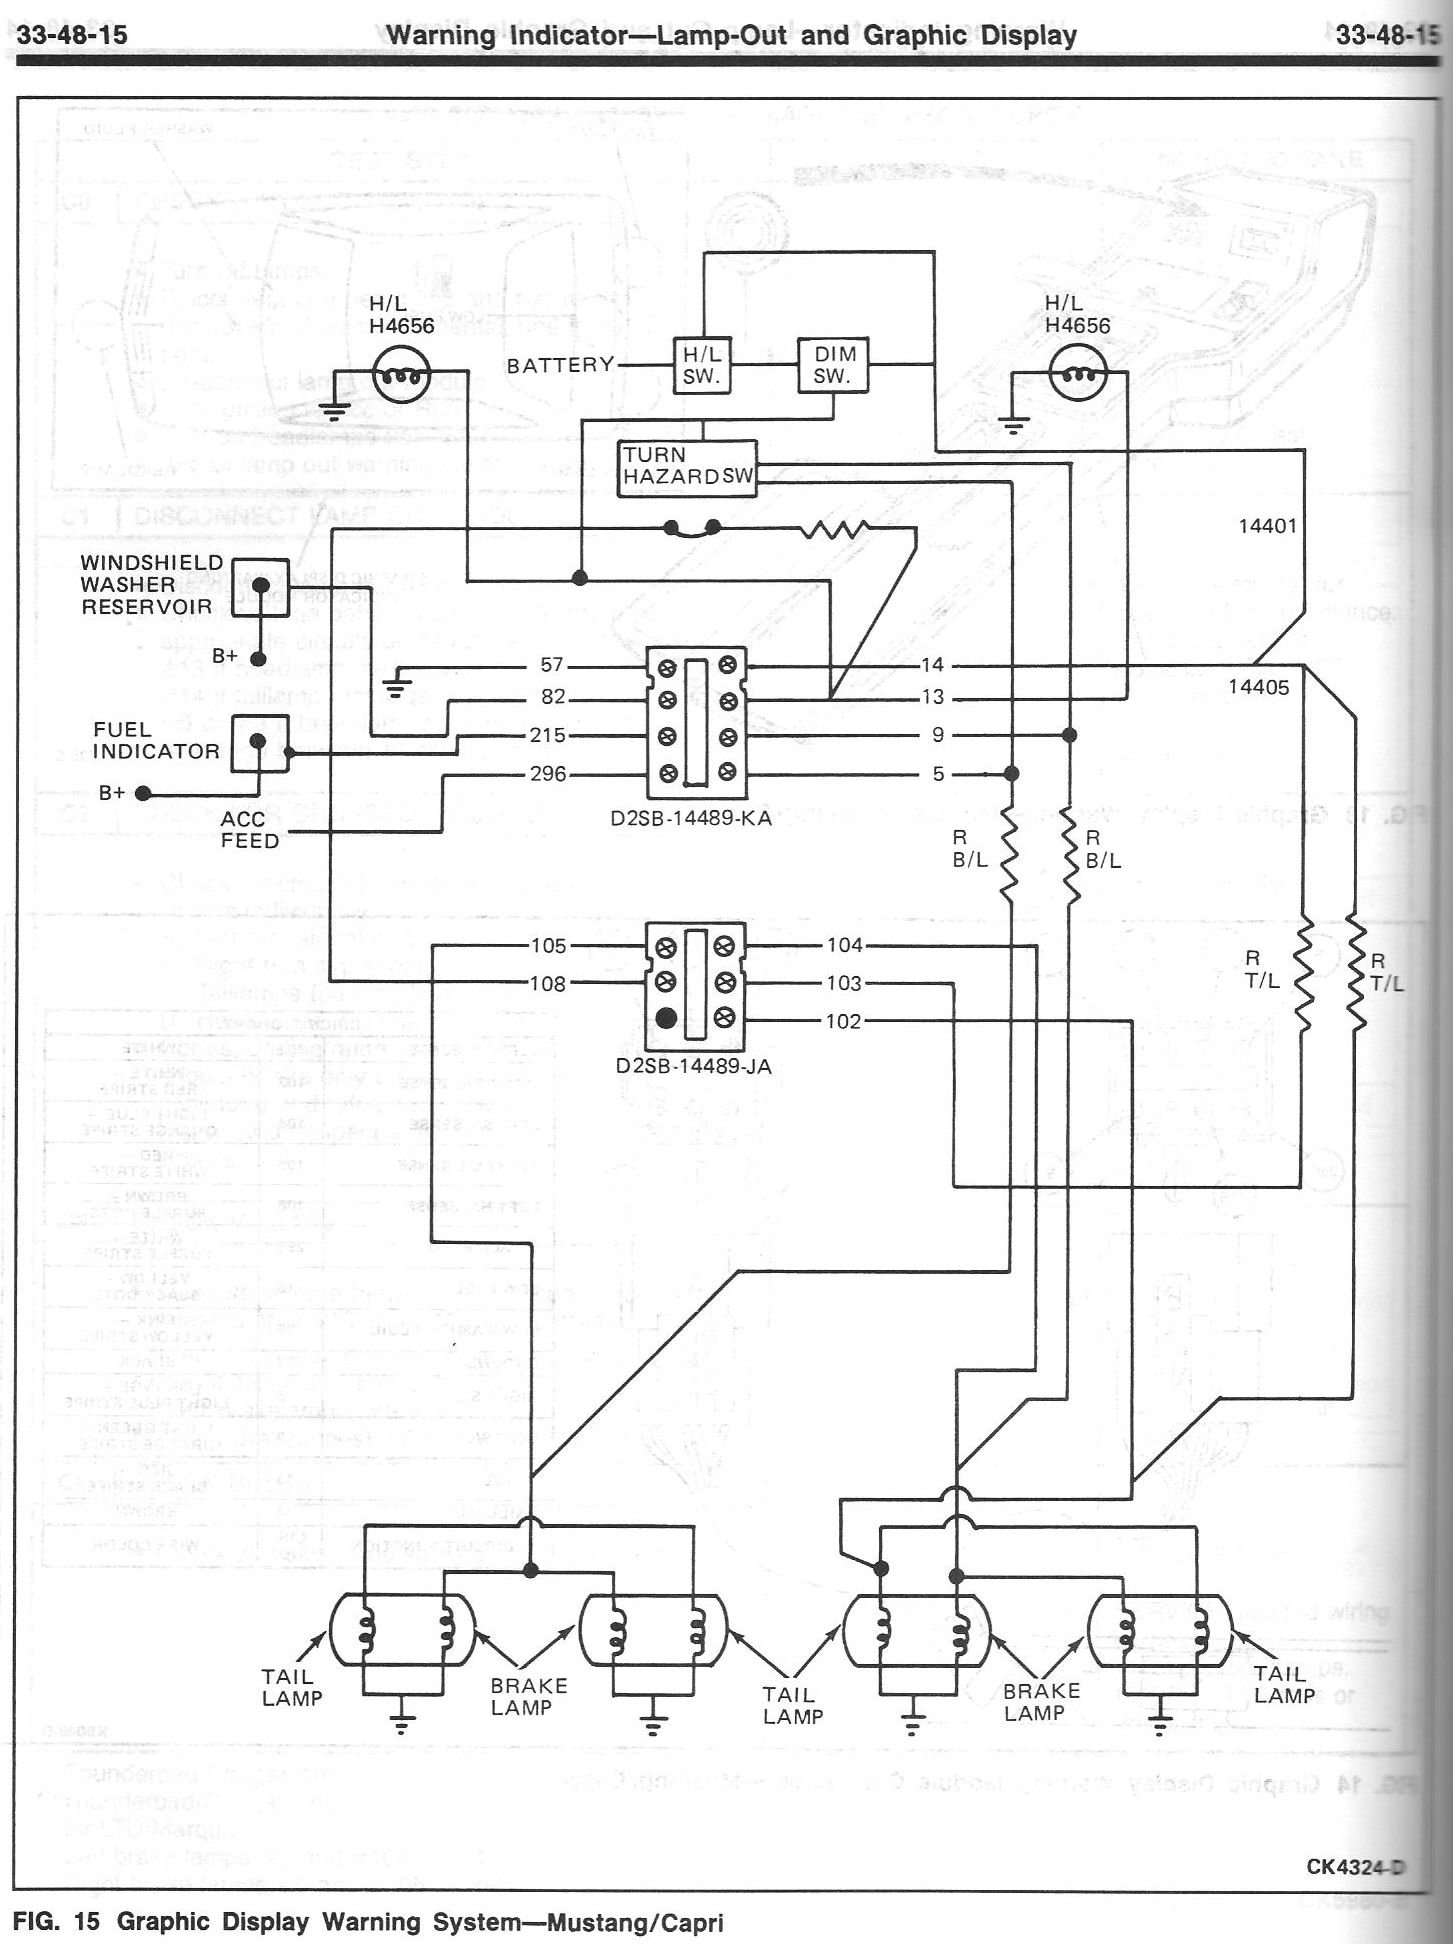 lamp wiring diagram stereo for 2004 jeep grand cherokee 1986 mustang gt, indicator lights - ford forum